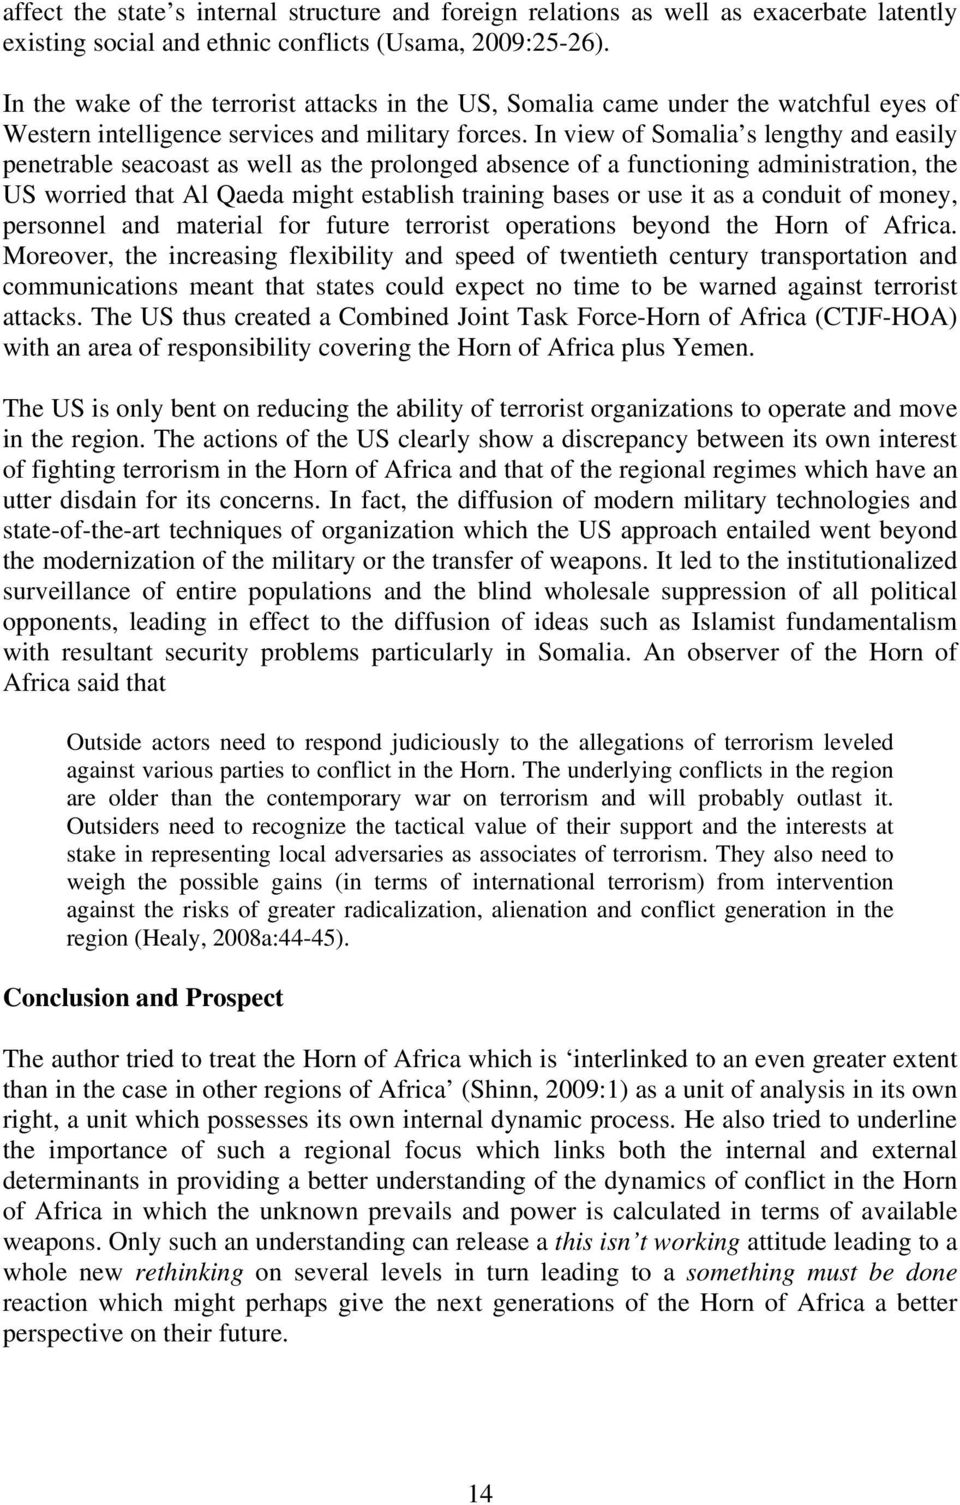 In view of Somalia s lengthy and easily penetrable seacoast as well as the prolonged absence of a functioning administration, the US worried that Al Qaeda might establish training bases or use it as